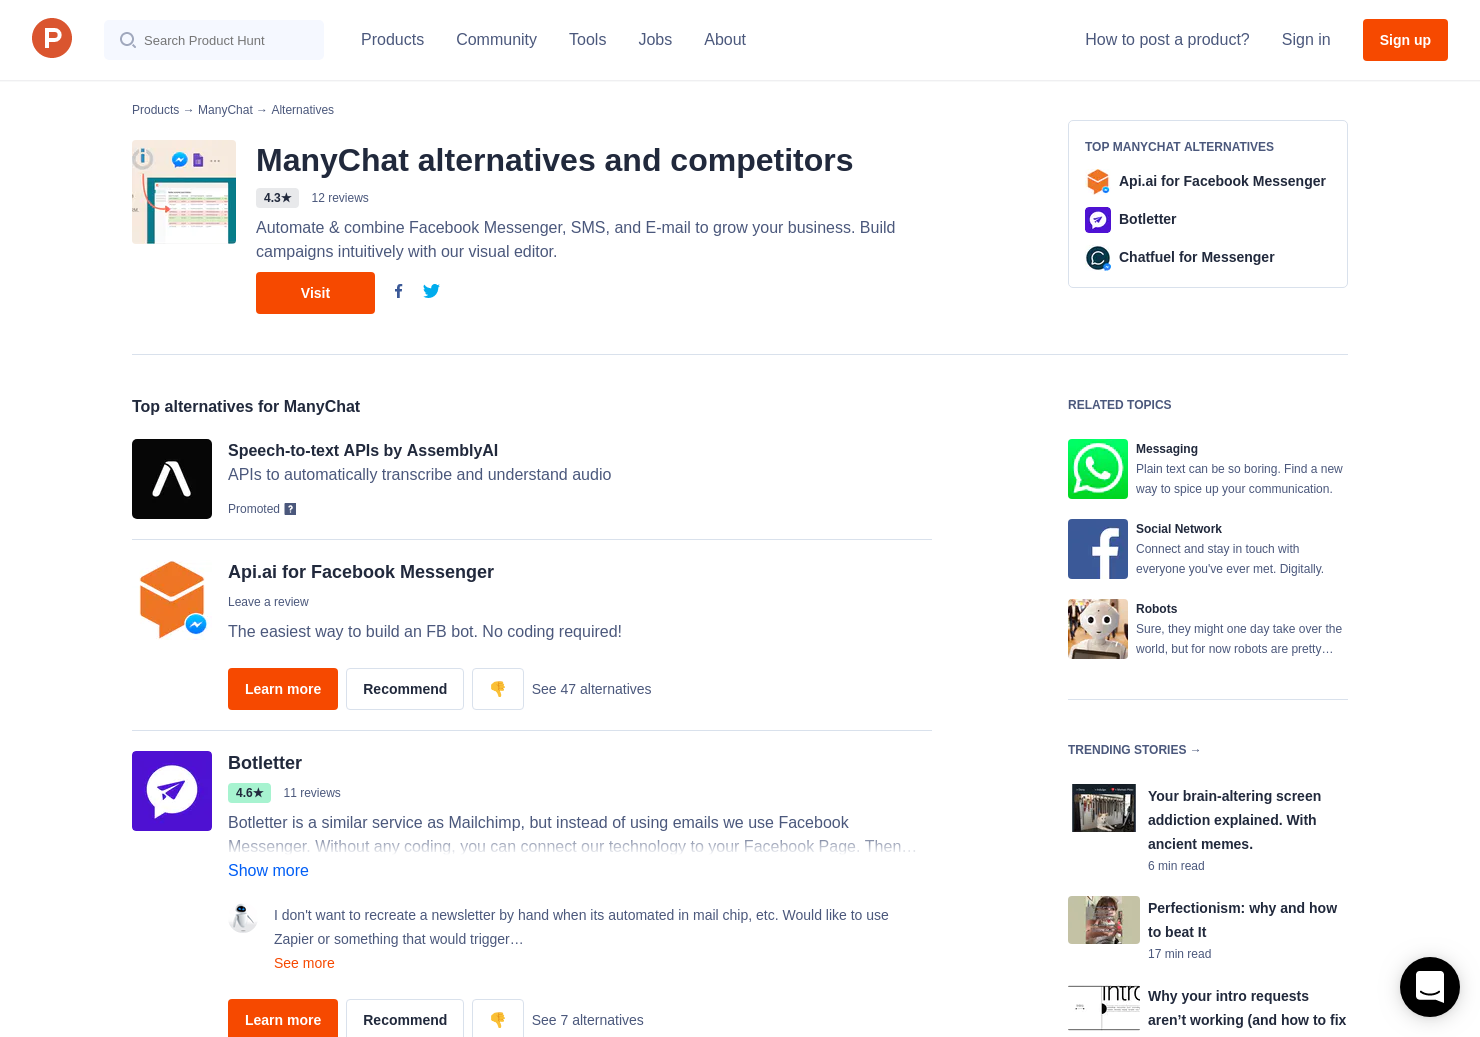 15 Alternatives to ManyChat for Facebook Messenger | Product